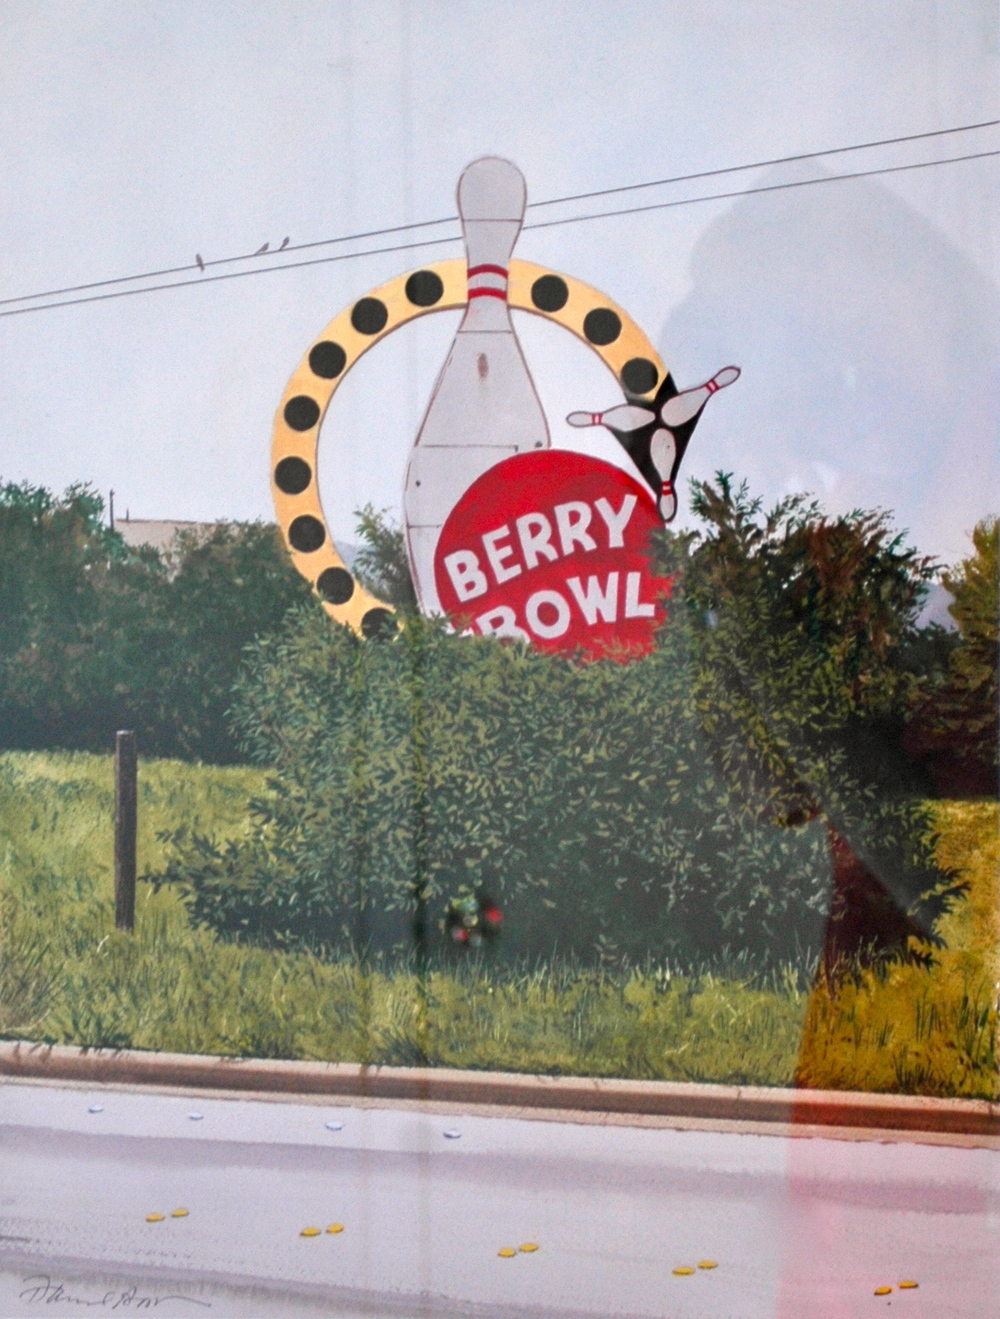 "Daniel Blagg, Berry Bowl, 2011, watercolor on paper, 35 x 27 1/2"". Private Collection, Fort Worth, TX."